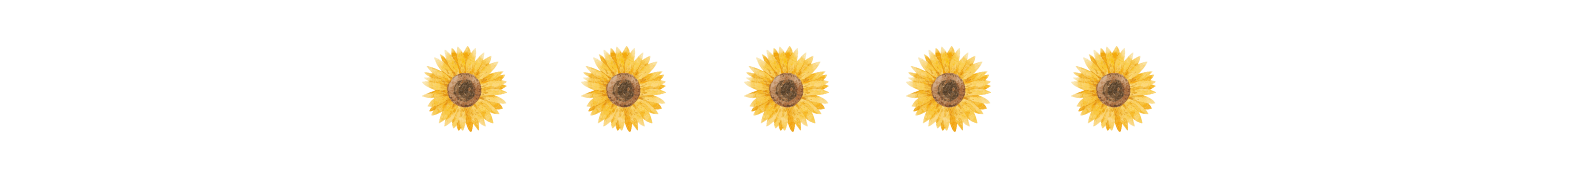 small, centered image of five sunflowers